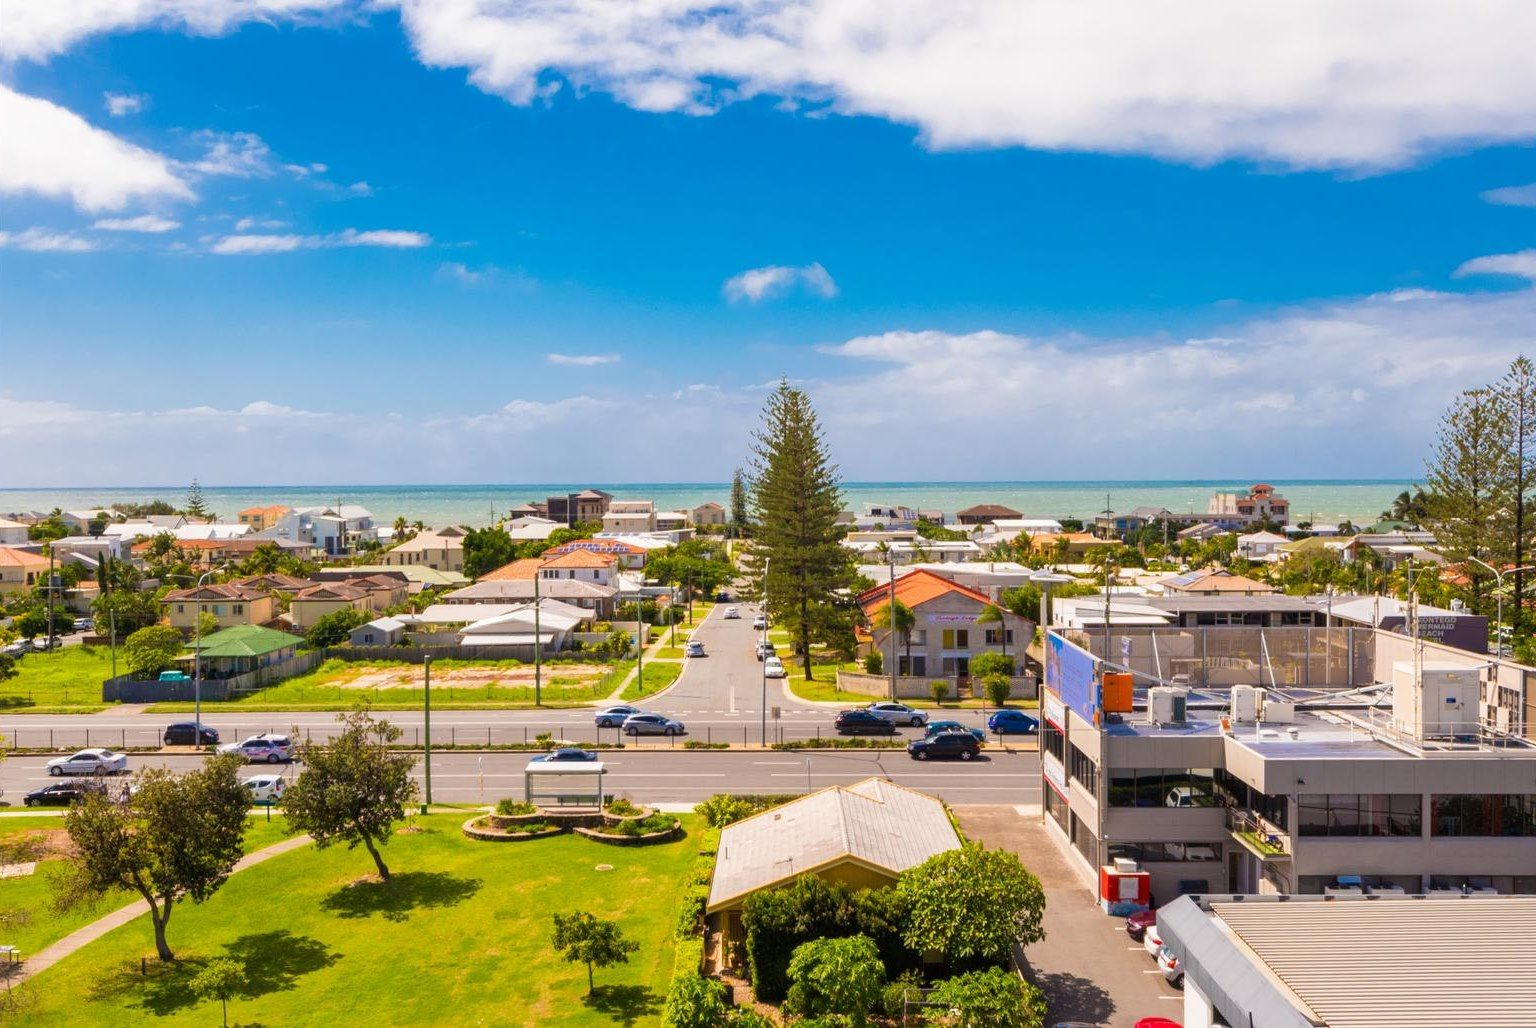 503/9-15 Markeri Street, Mermaid Beach QLD 4218, Image 0